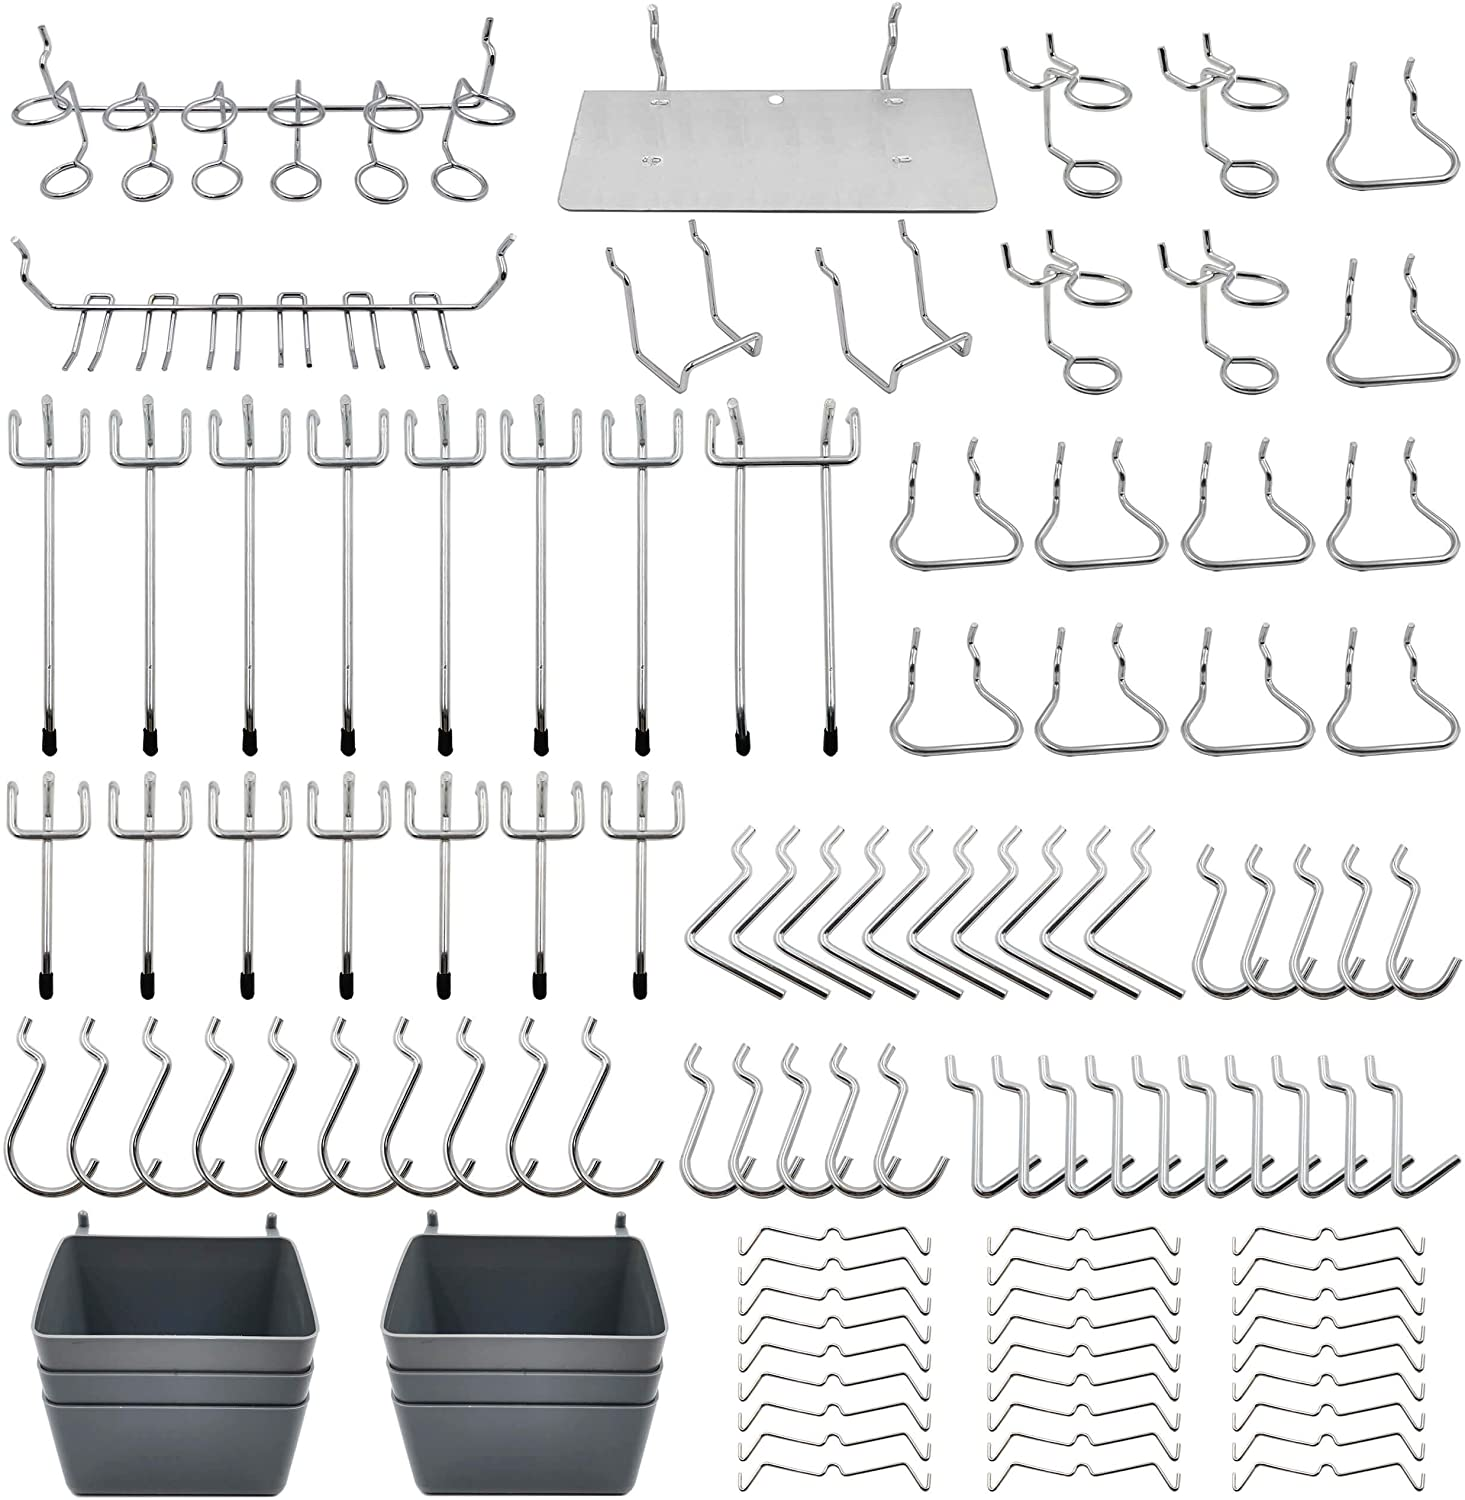 Pegboard Hooks Assortment with Pegboard Bins, Peg Locks, for Organizing Various Tools, 140 Piece